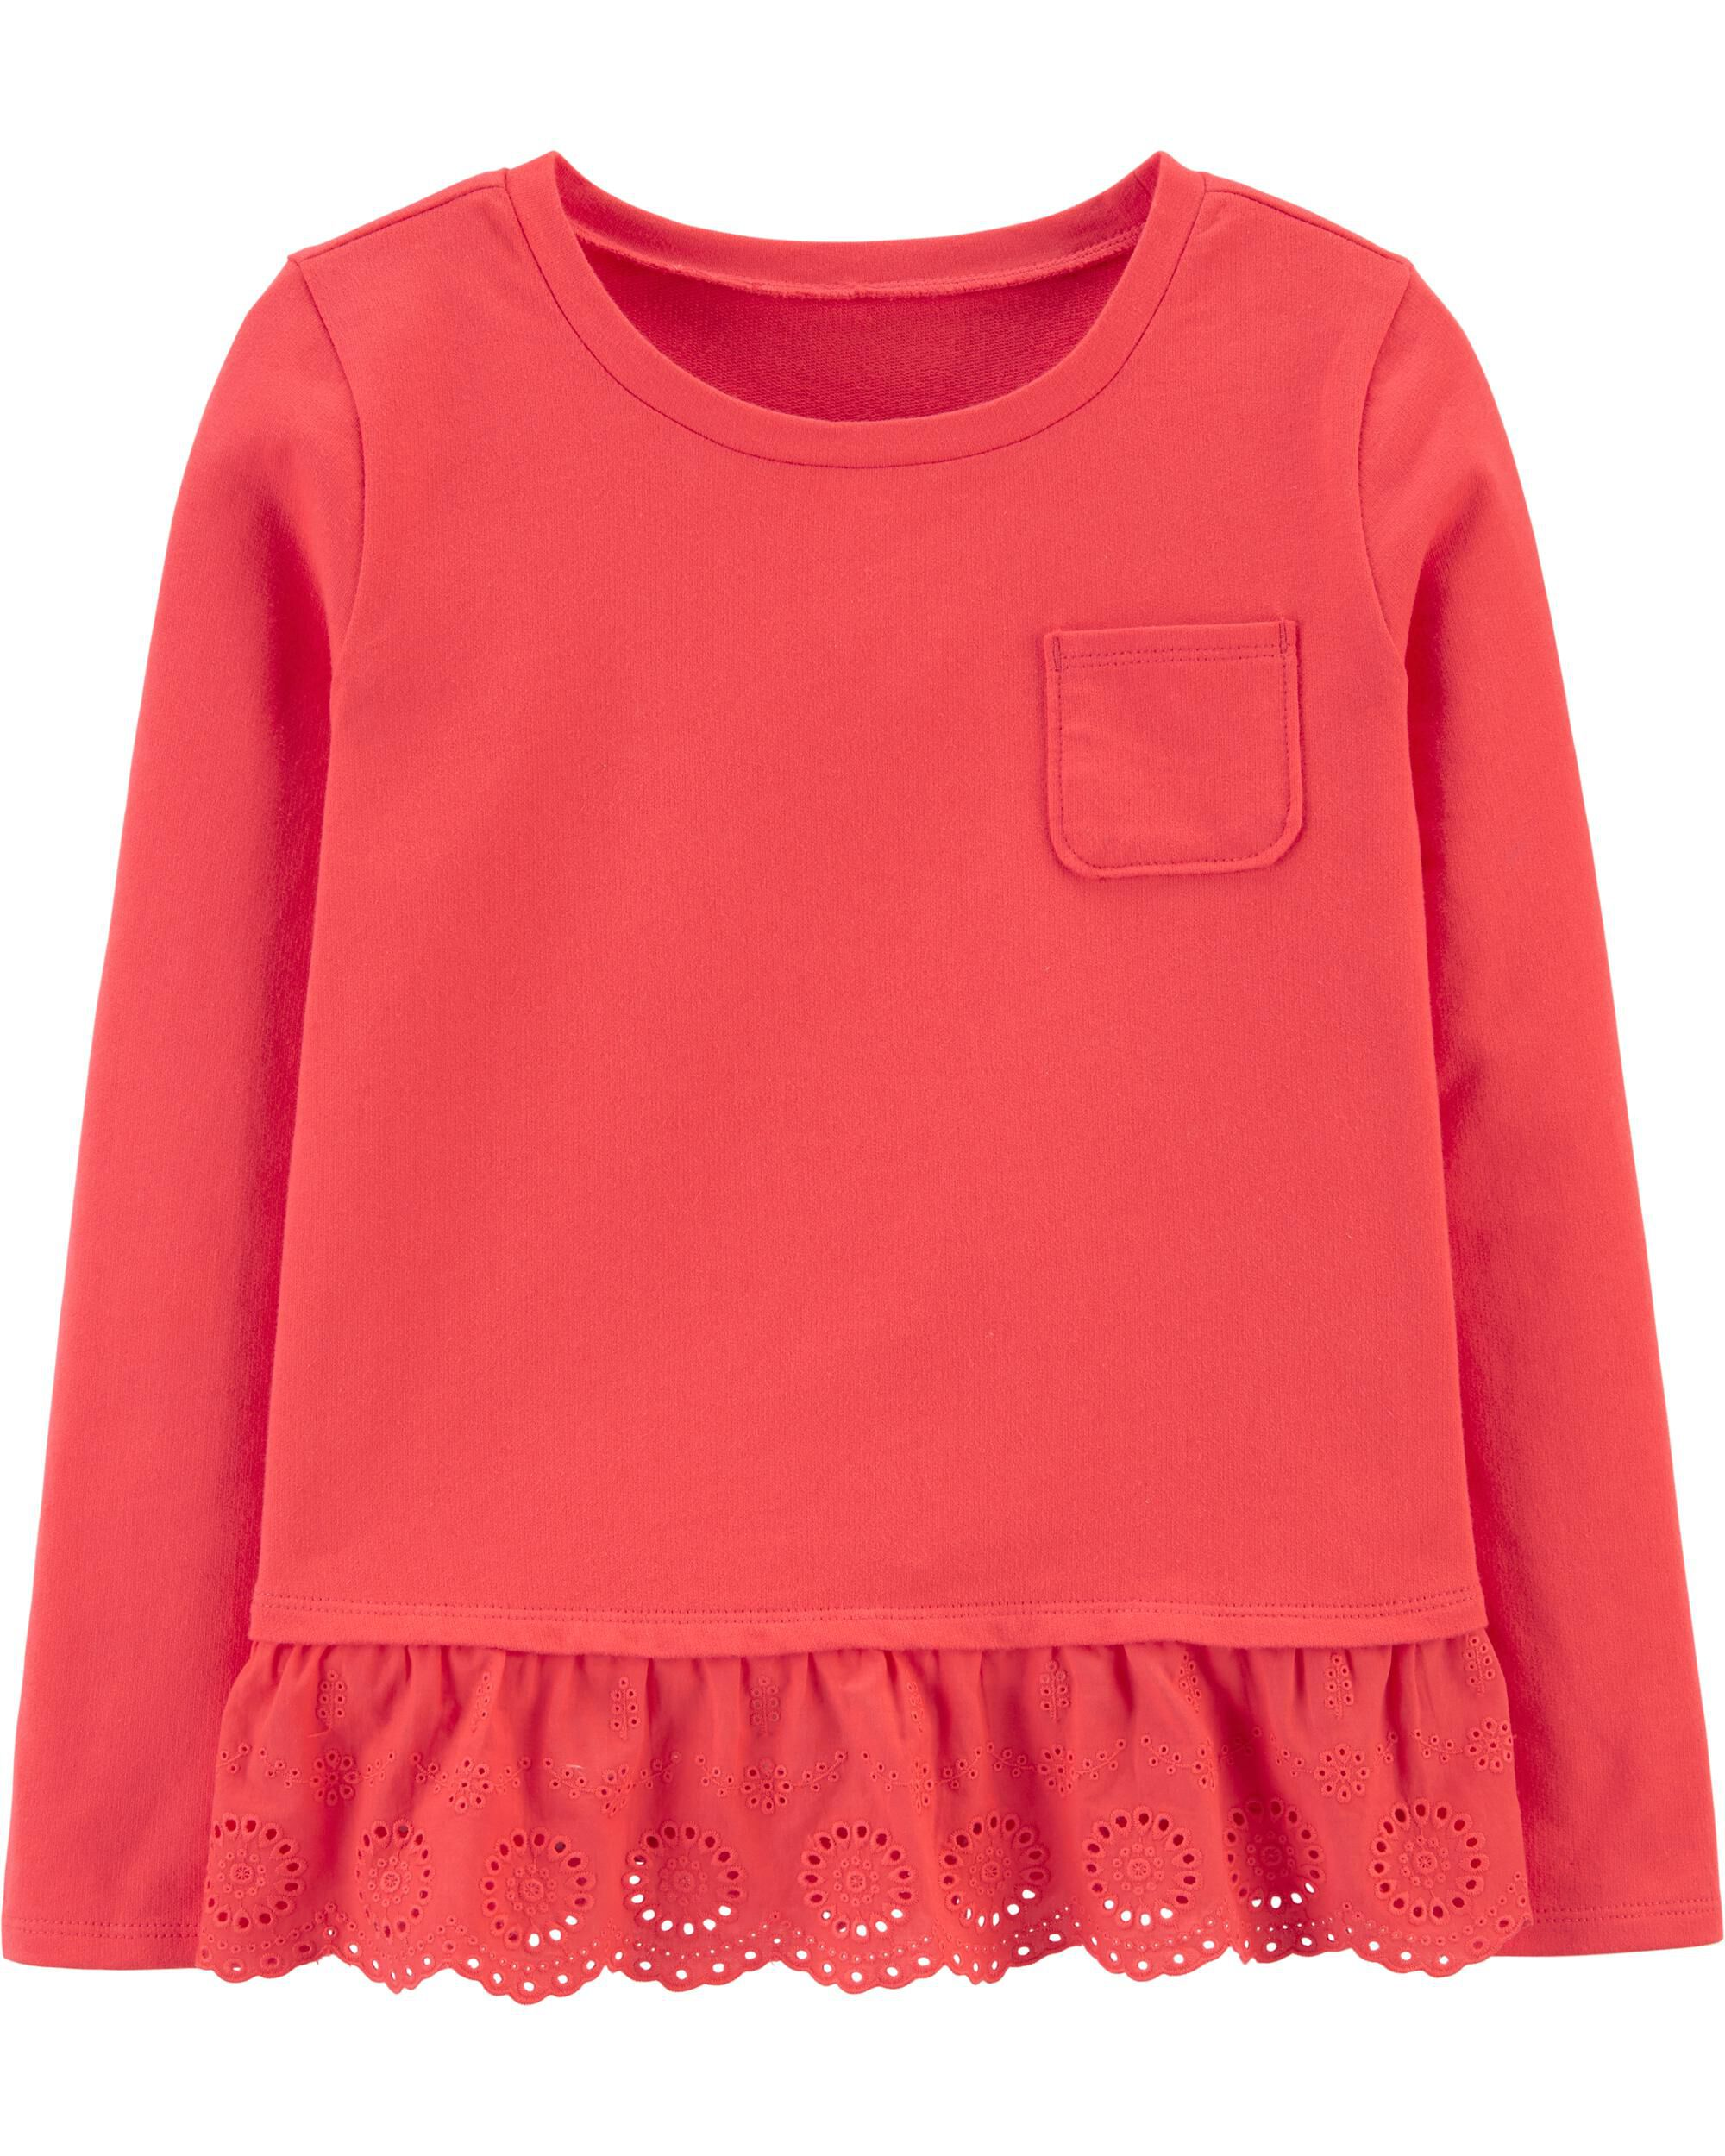 Eyelet Hem French Terry Top